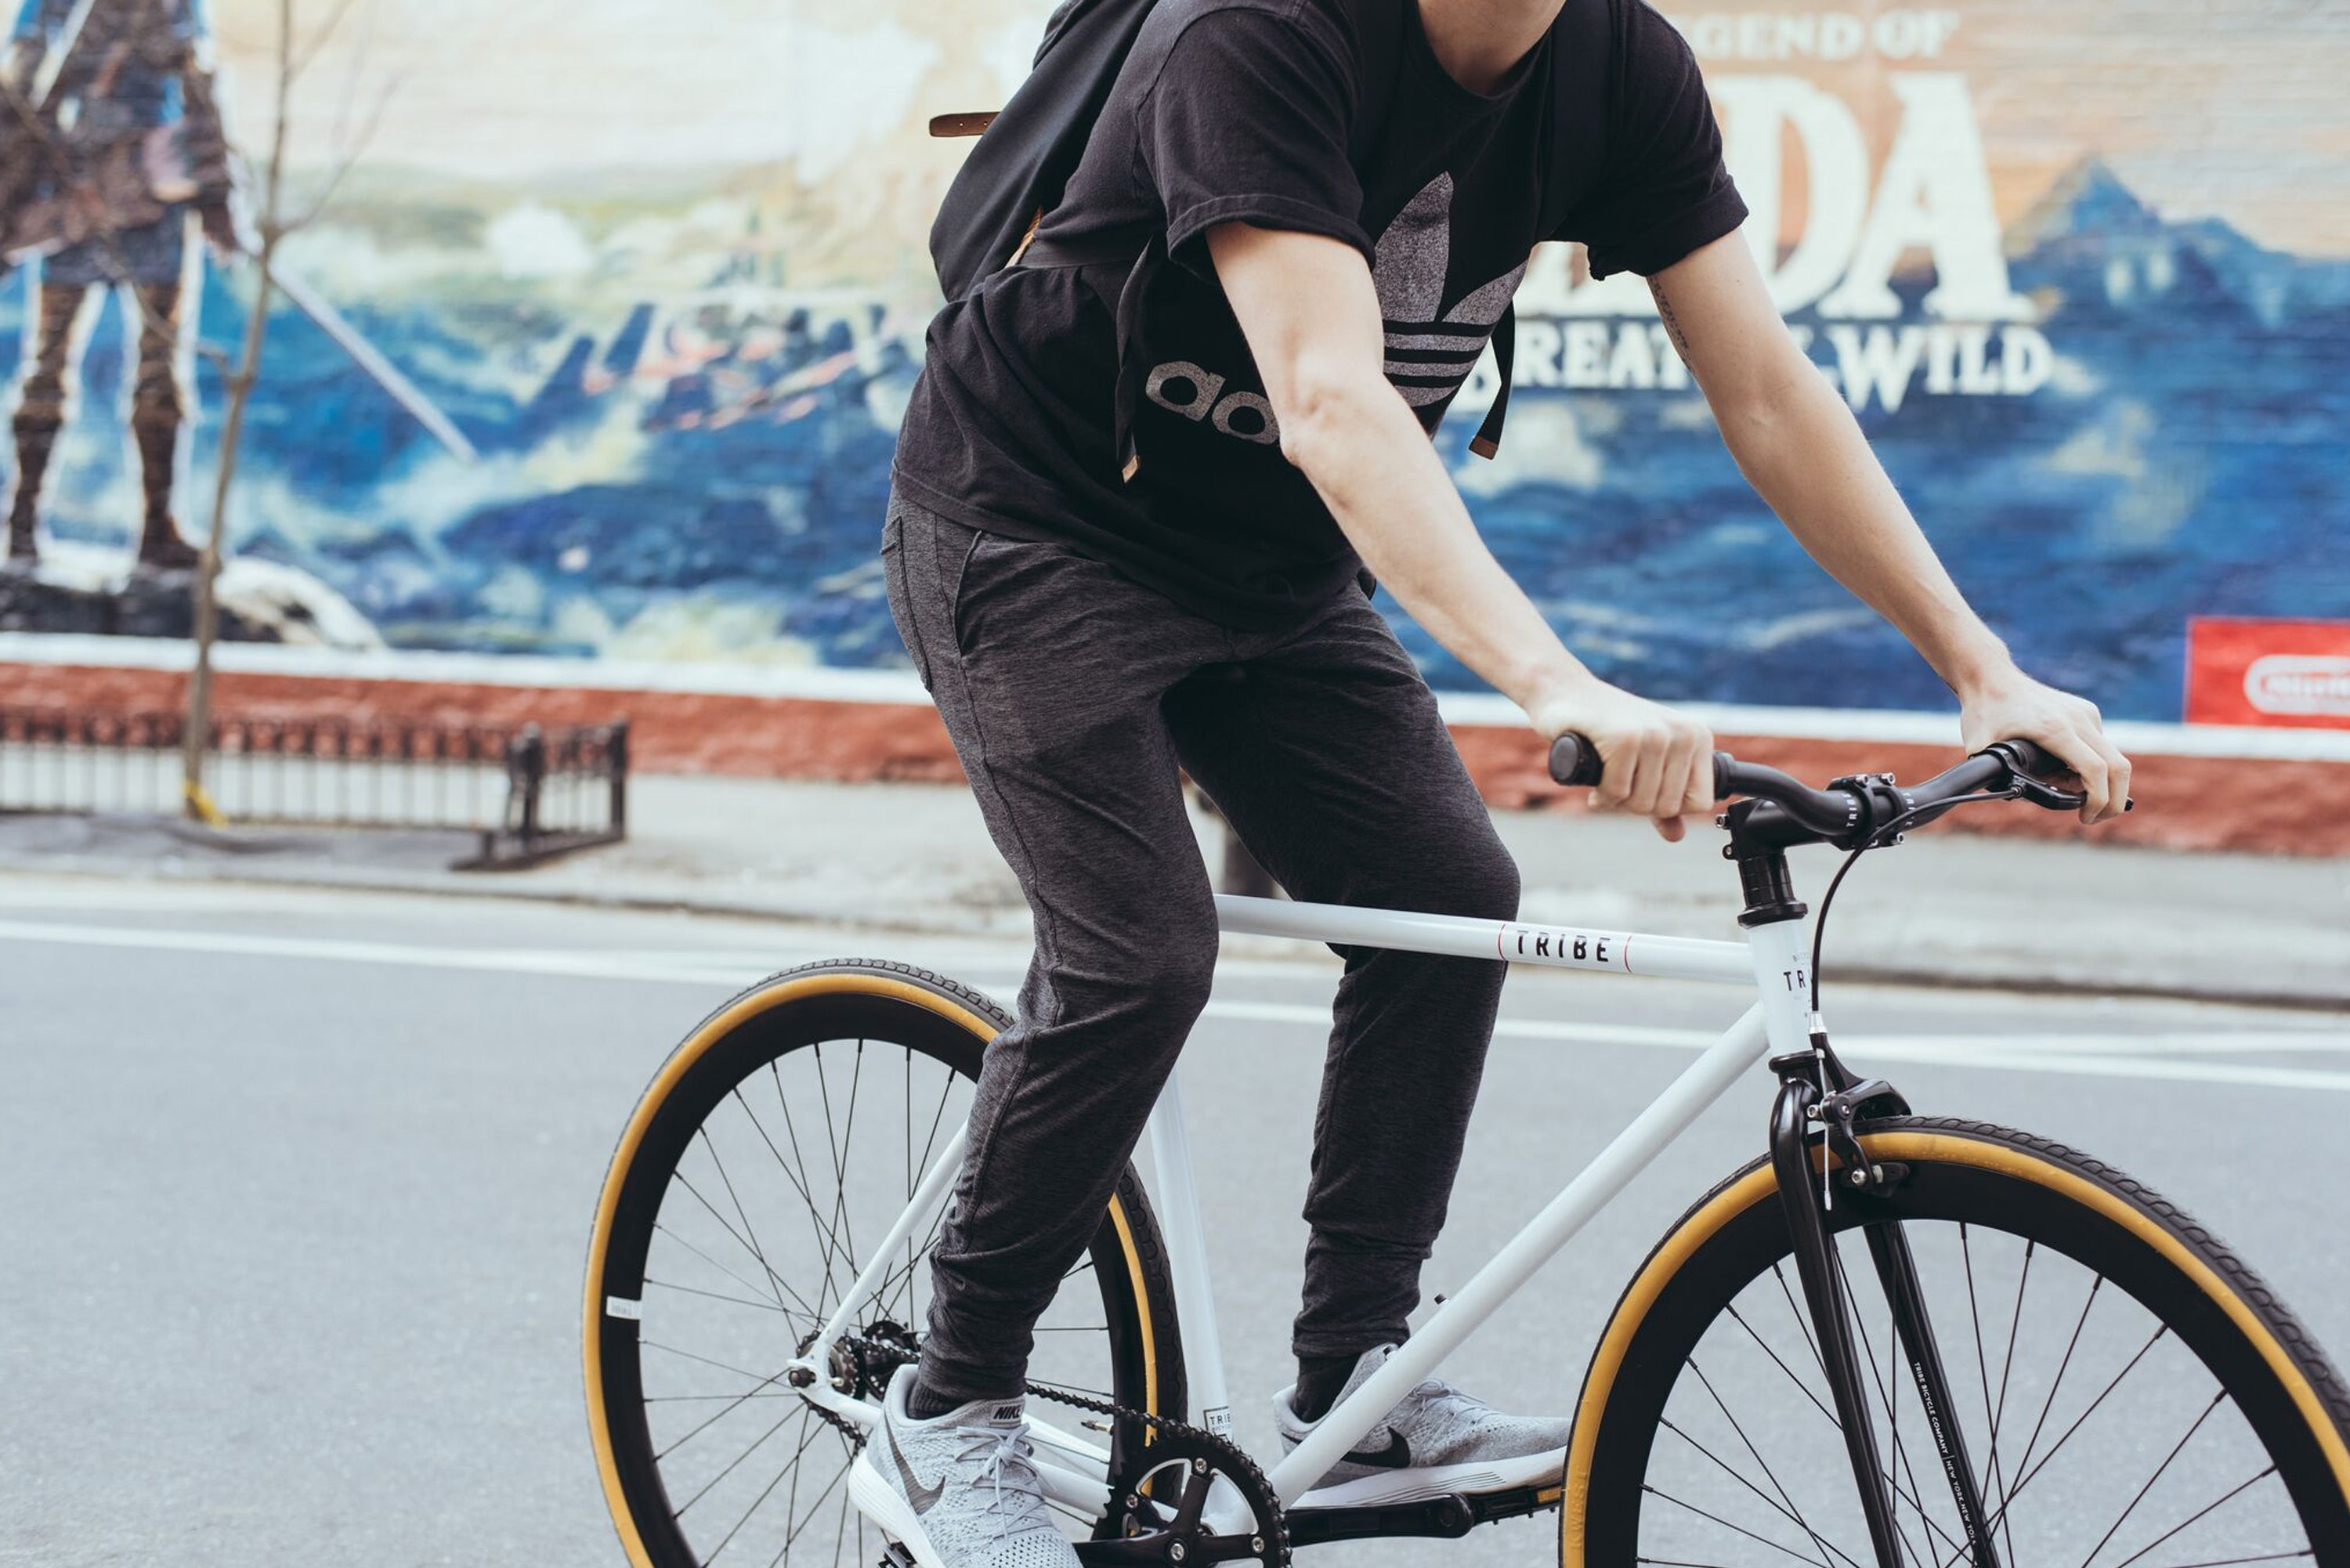 816d7c88c ... Tribe Bicycle Co Hi ten series Fixed Gear Single Speed Bike Dane ...